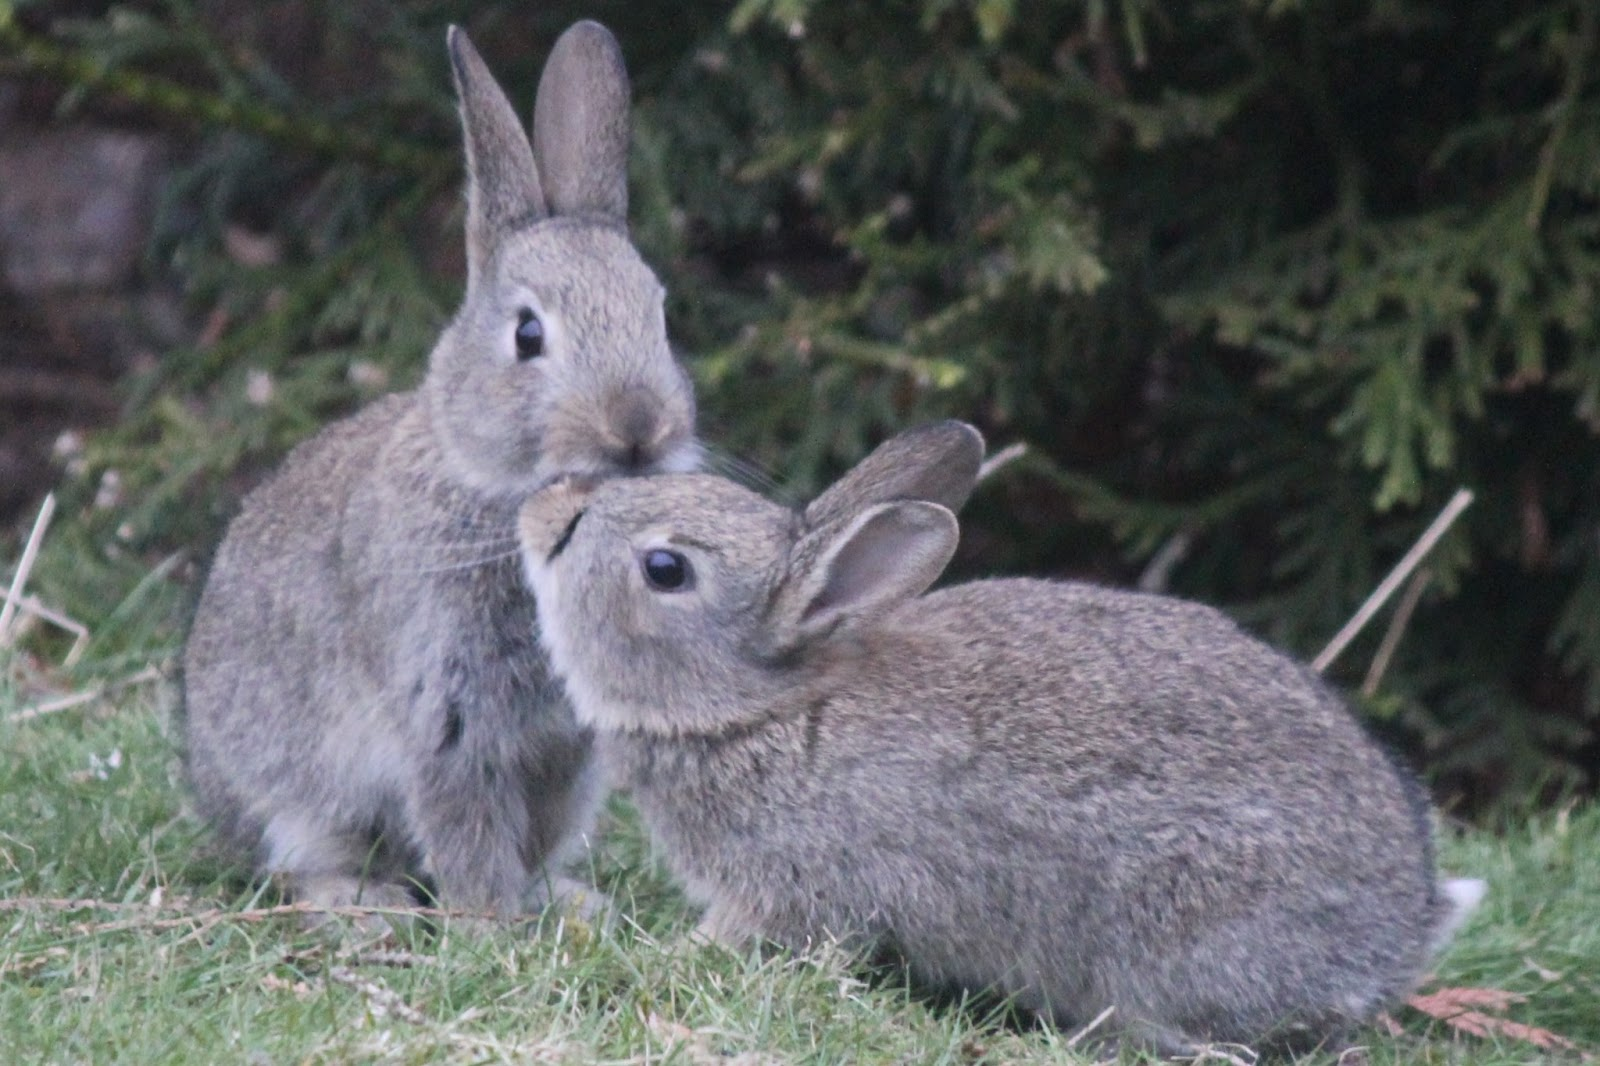 Animals and kids: Wild rabbits